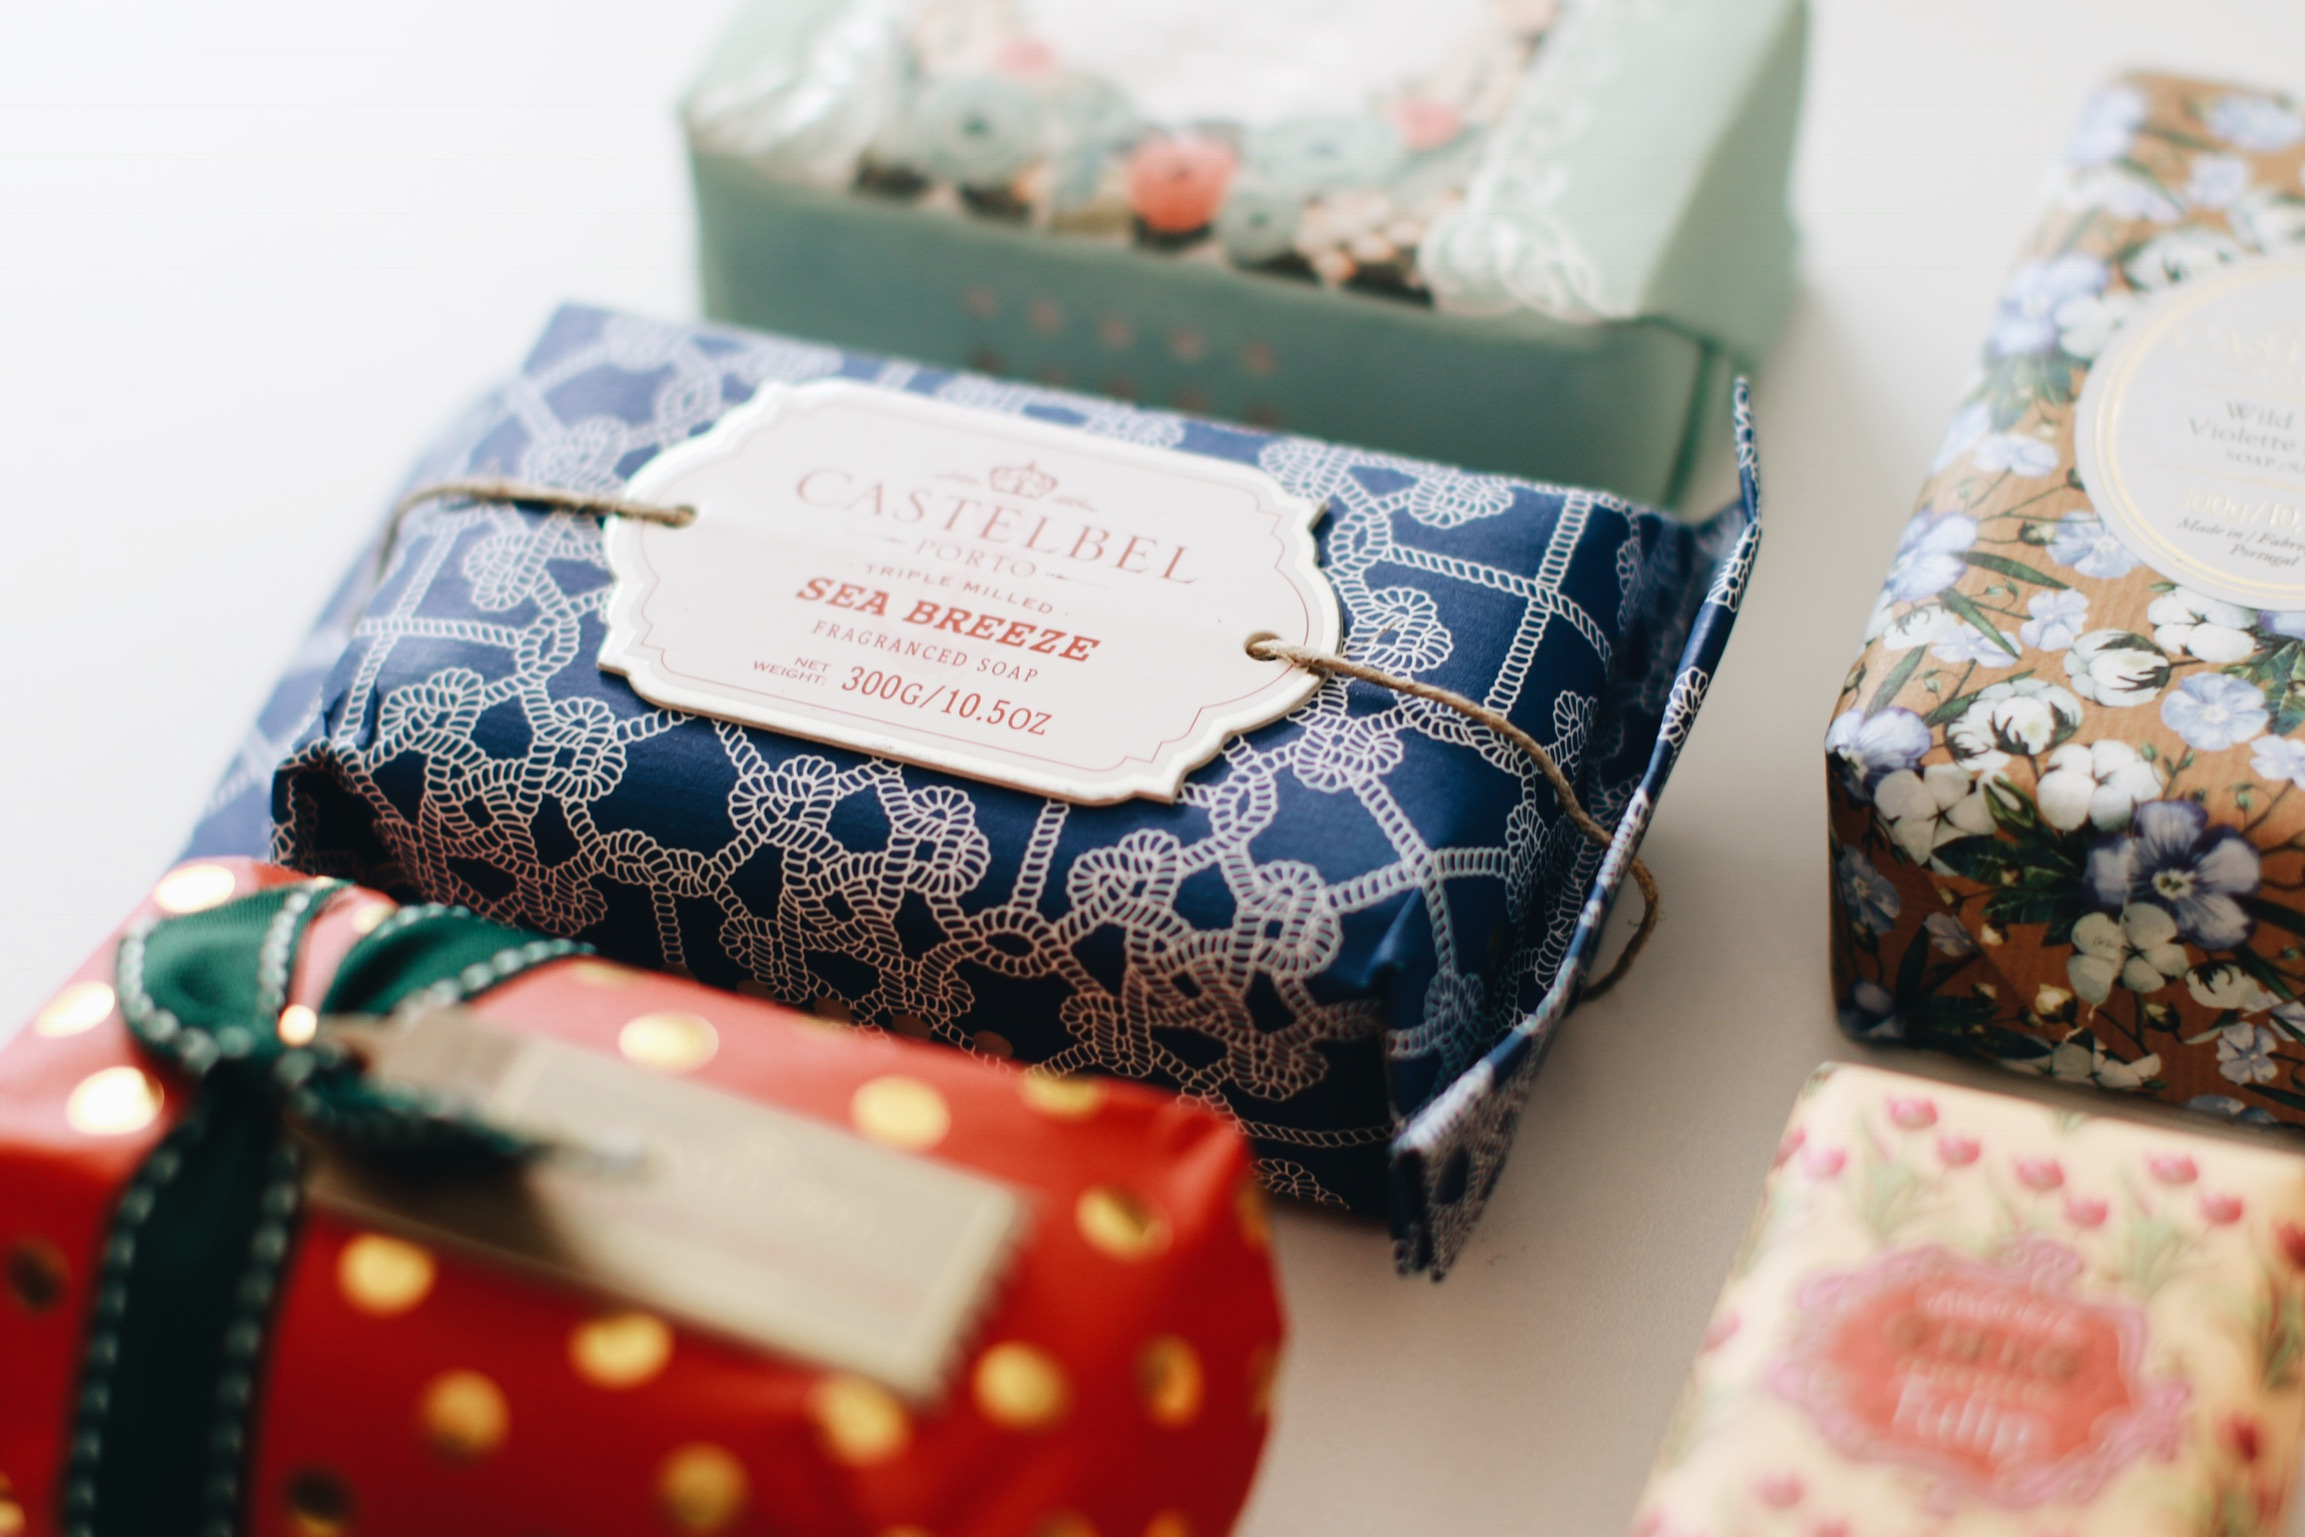 castelbel soap from portugal for luxury bath time